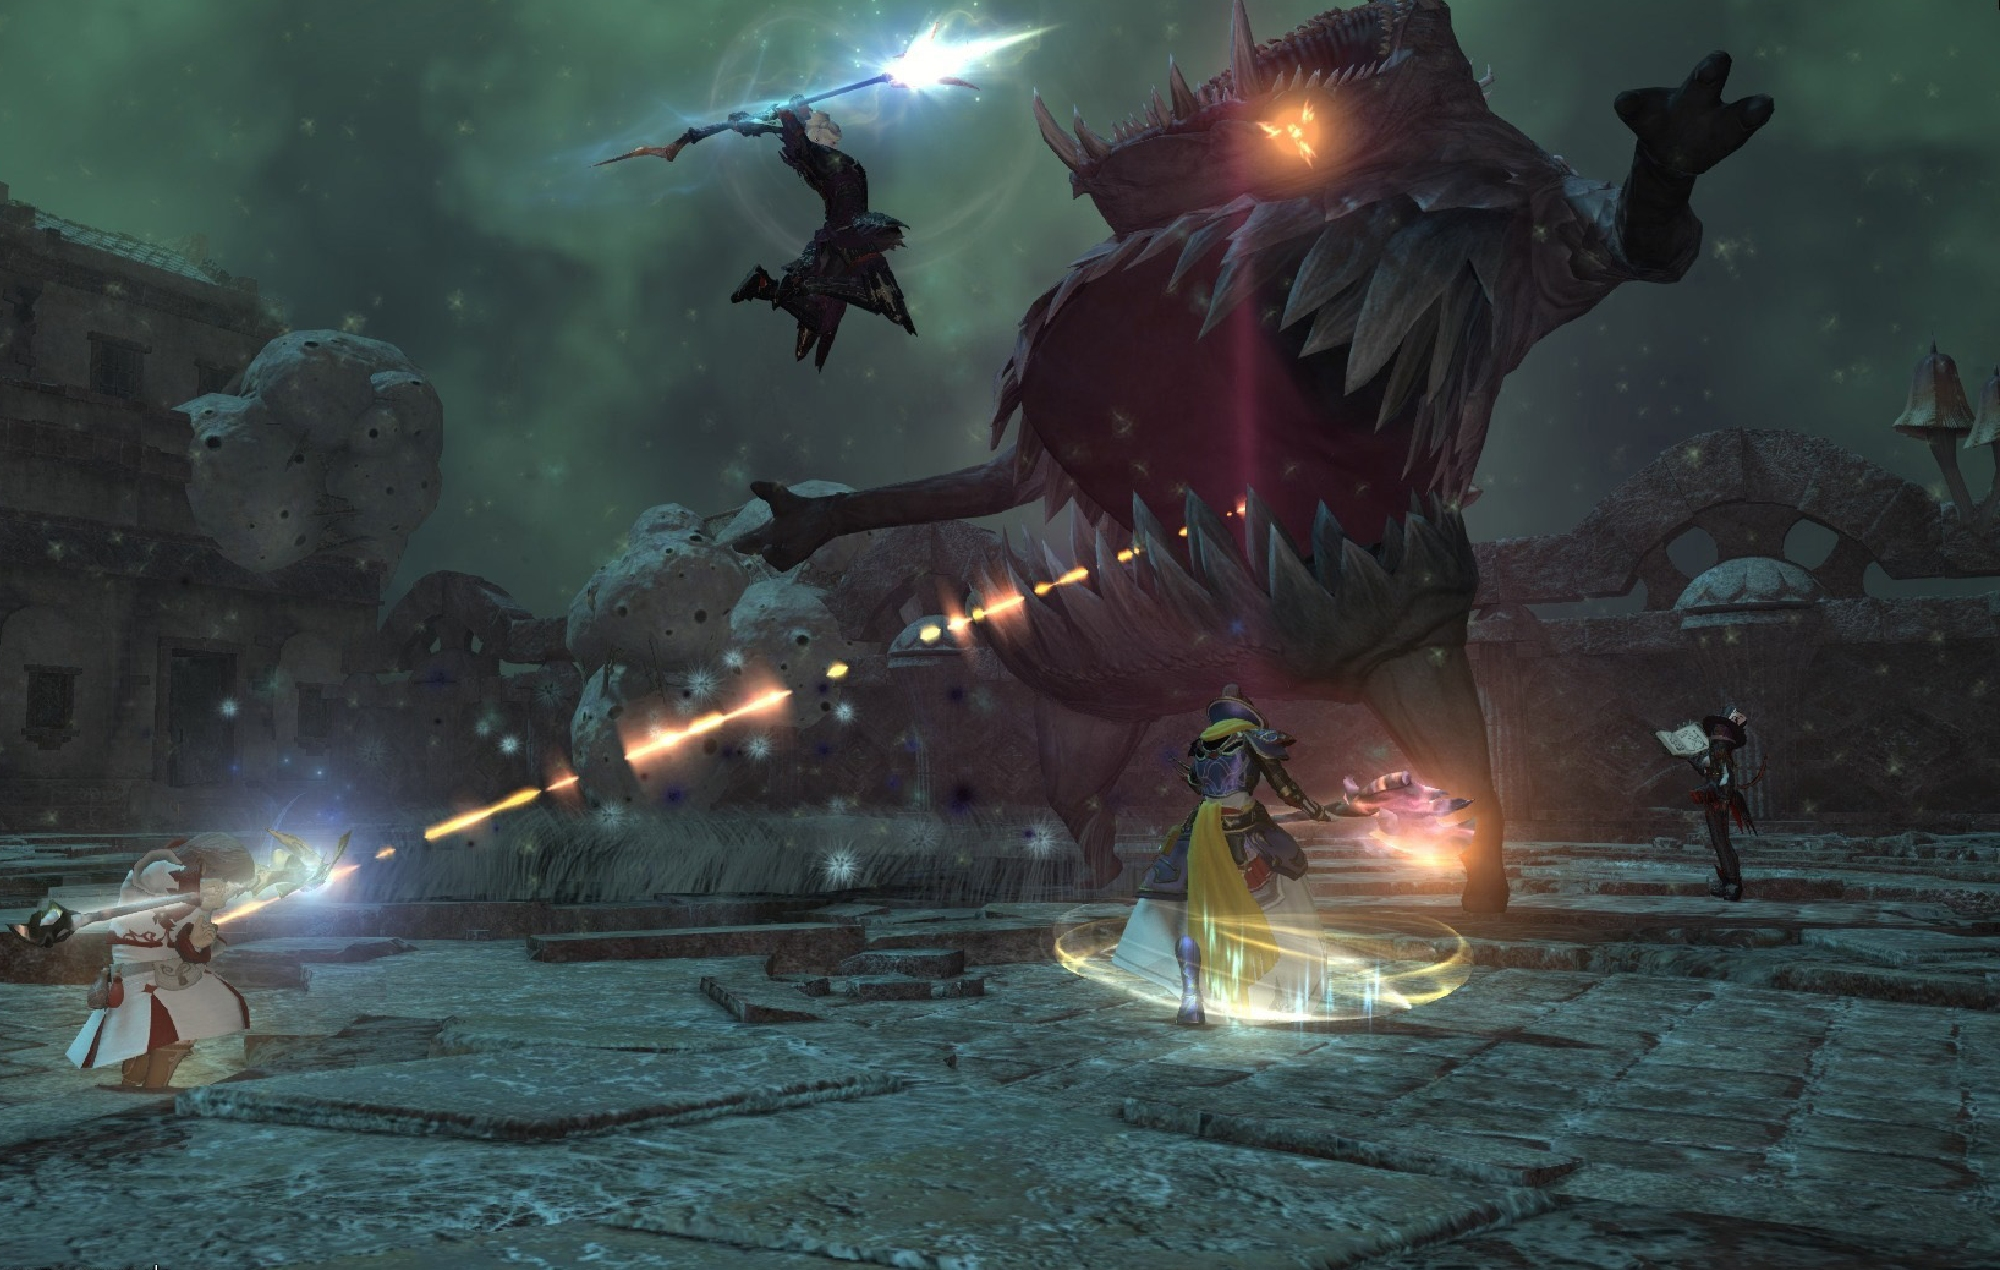 'Final Fantasy XIV' is free on the PlayStation Store for a limited time - NME